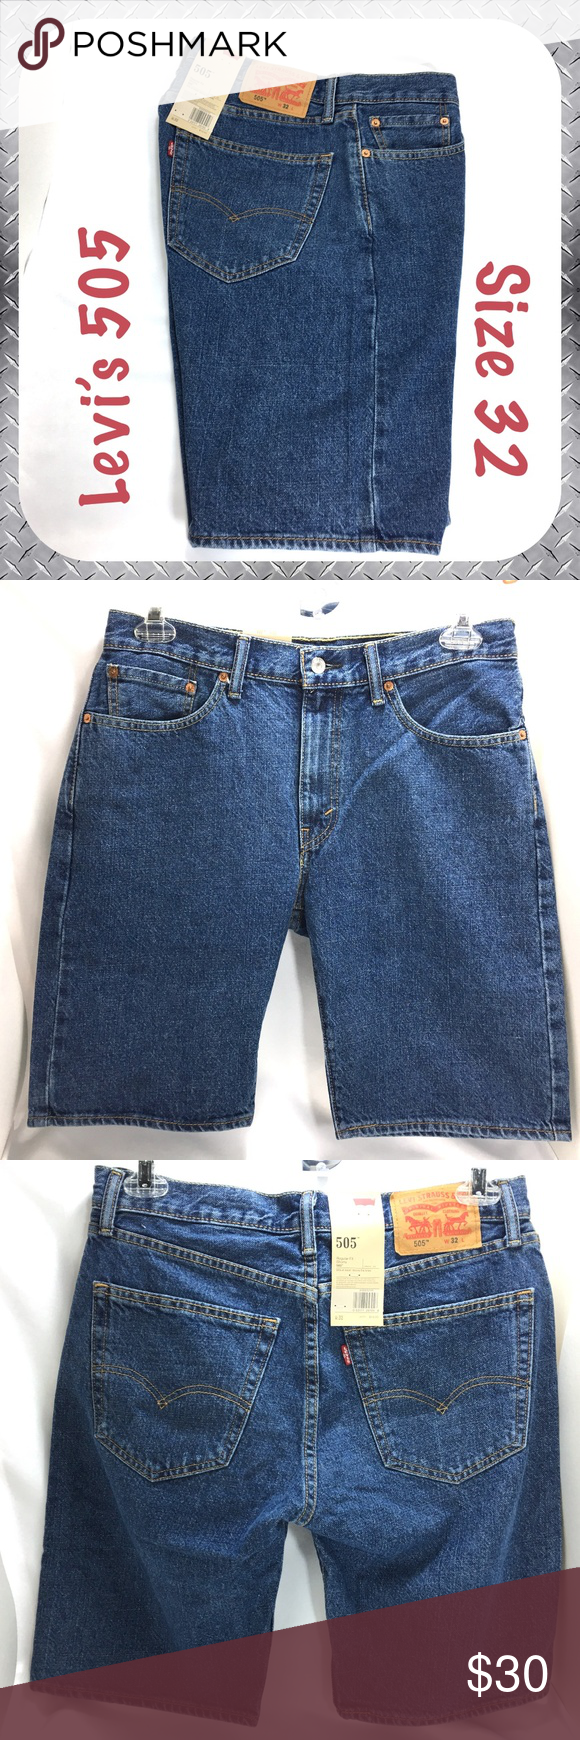 8548e848df6 NWT Levi's 505 Jean Shorts Regular Fit Flat Front New with Tags! Levi's ( Levis